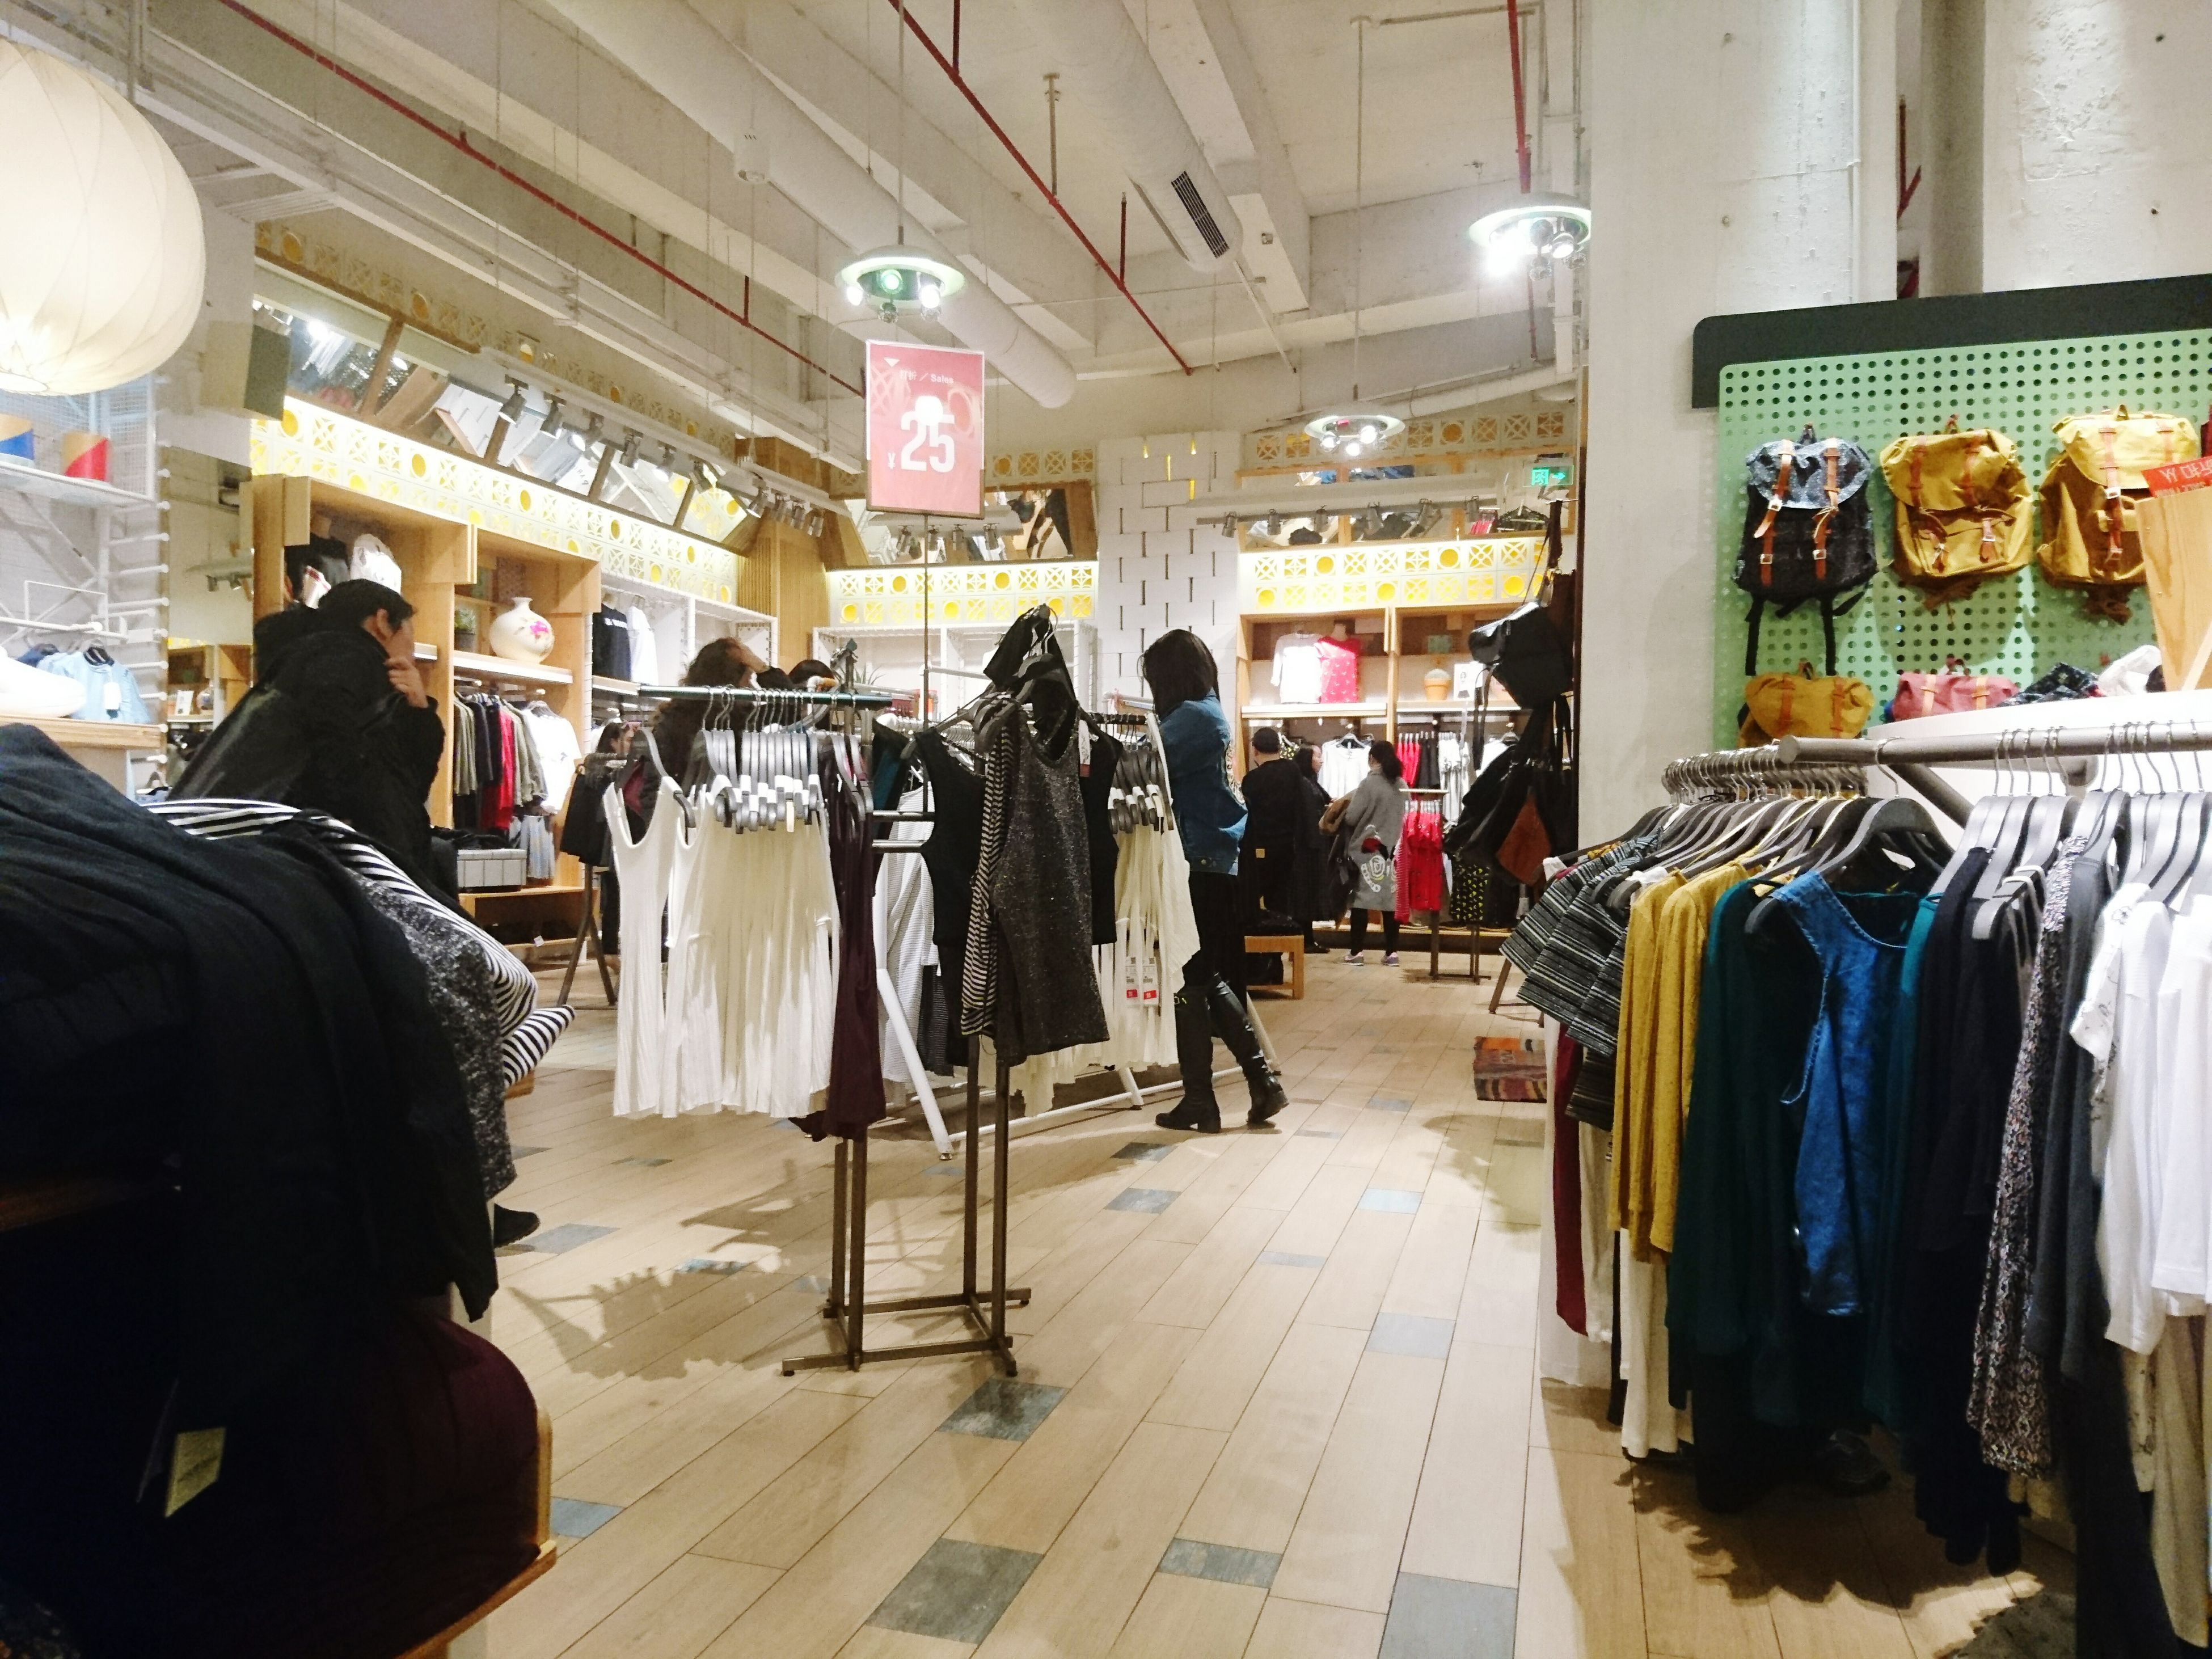 indoors, men, retail, person, lifestyles, market, store, market stall, shopping, for sale, shop, public transportation, leisure activity, casual clothing, transportation, medium group of people, standing, rear view, small business